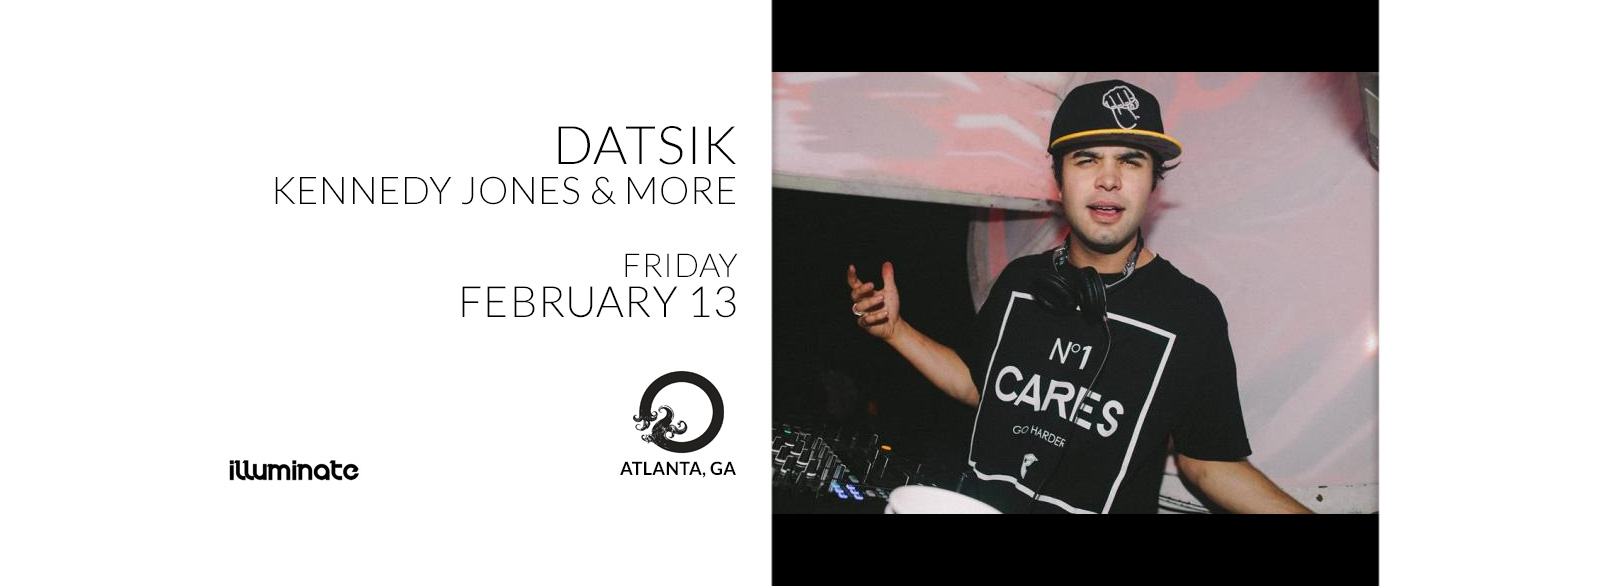 Datsik, Kenny Jones & more @ Opera Nightclub